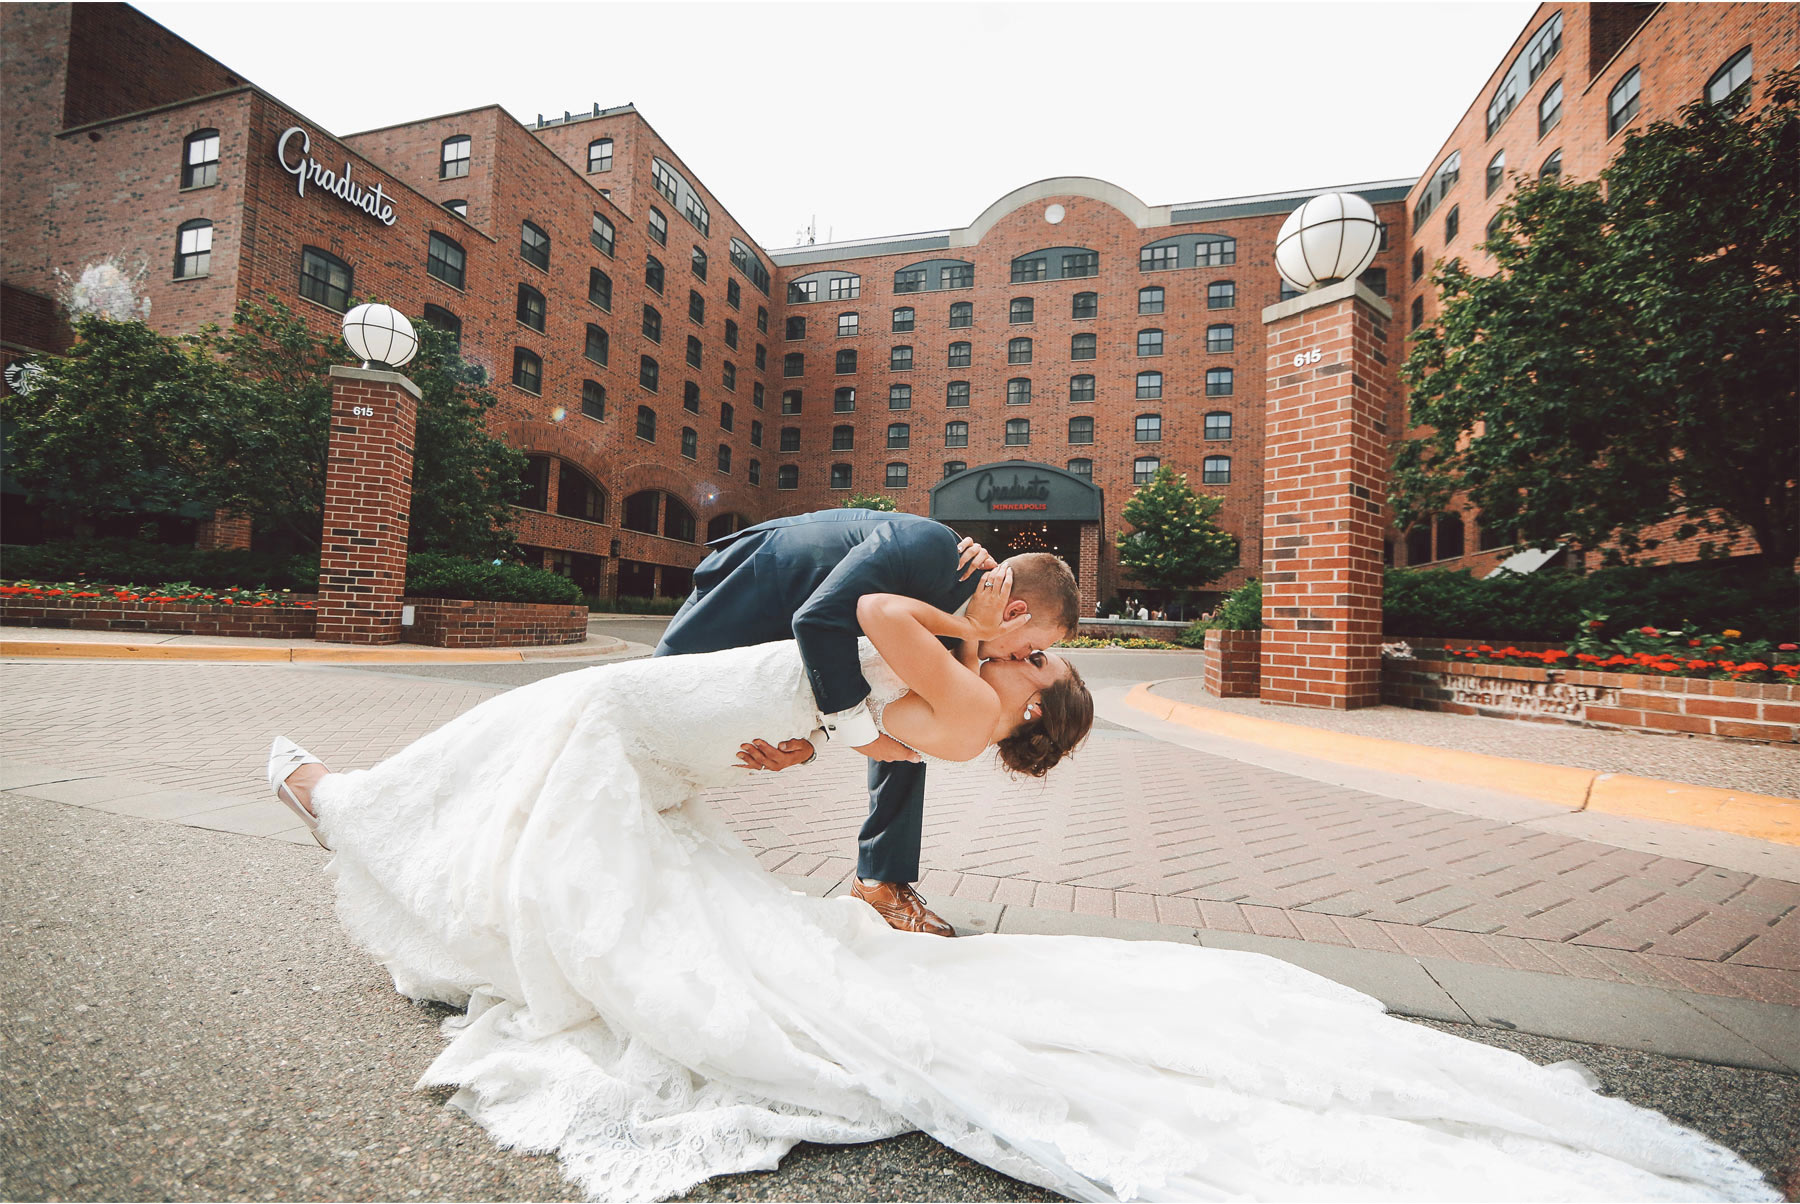 13-Minneapolis-Minnesota-Wedding-Photography-by-Vick-Photography-Graduate-Hotel-Brianna-and-Bryce.jpg